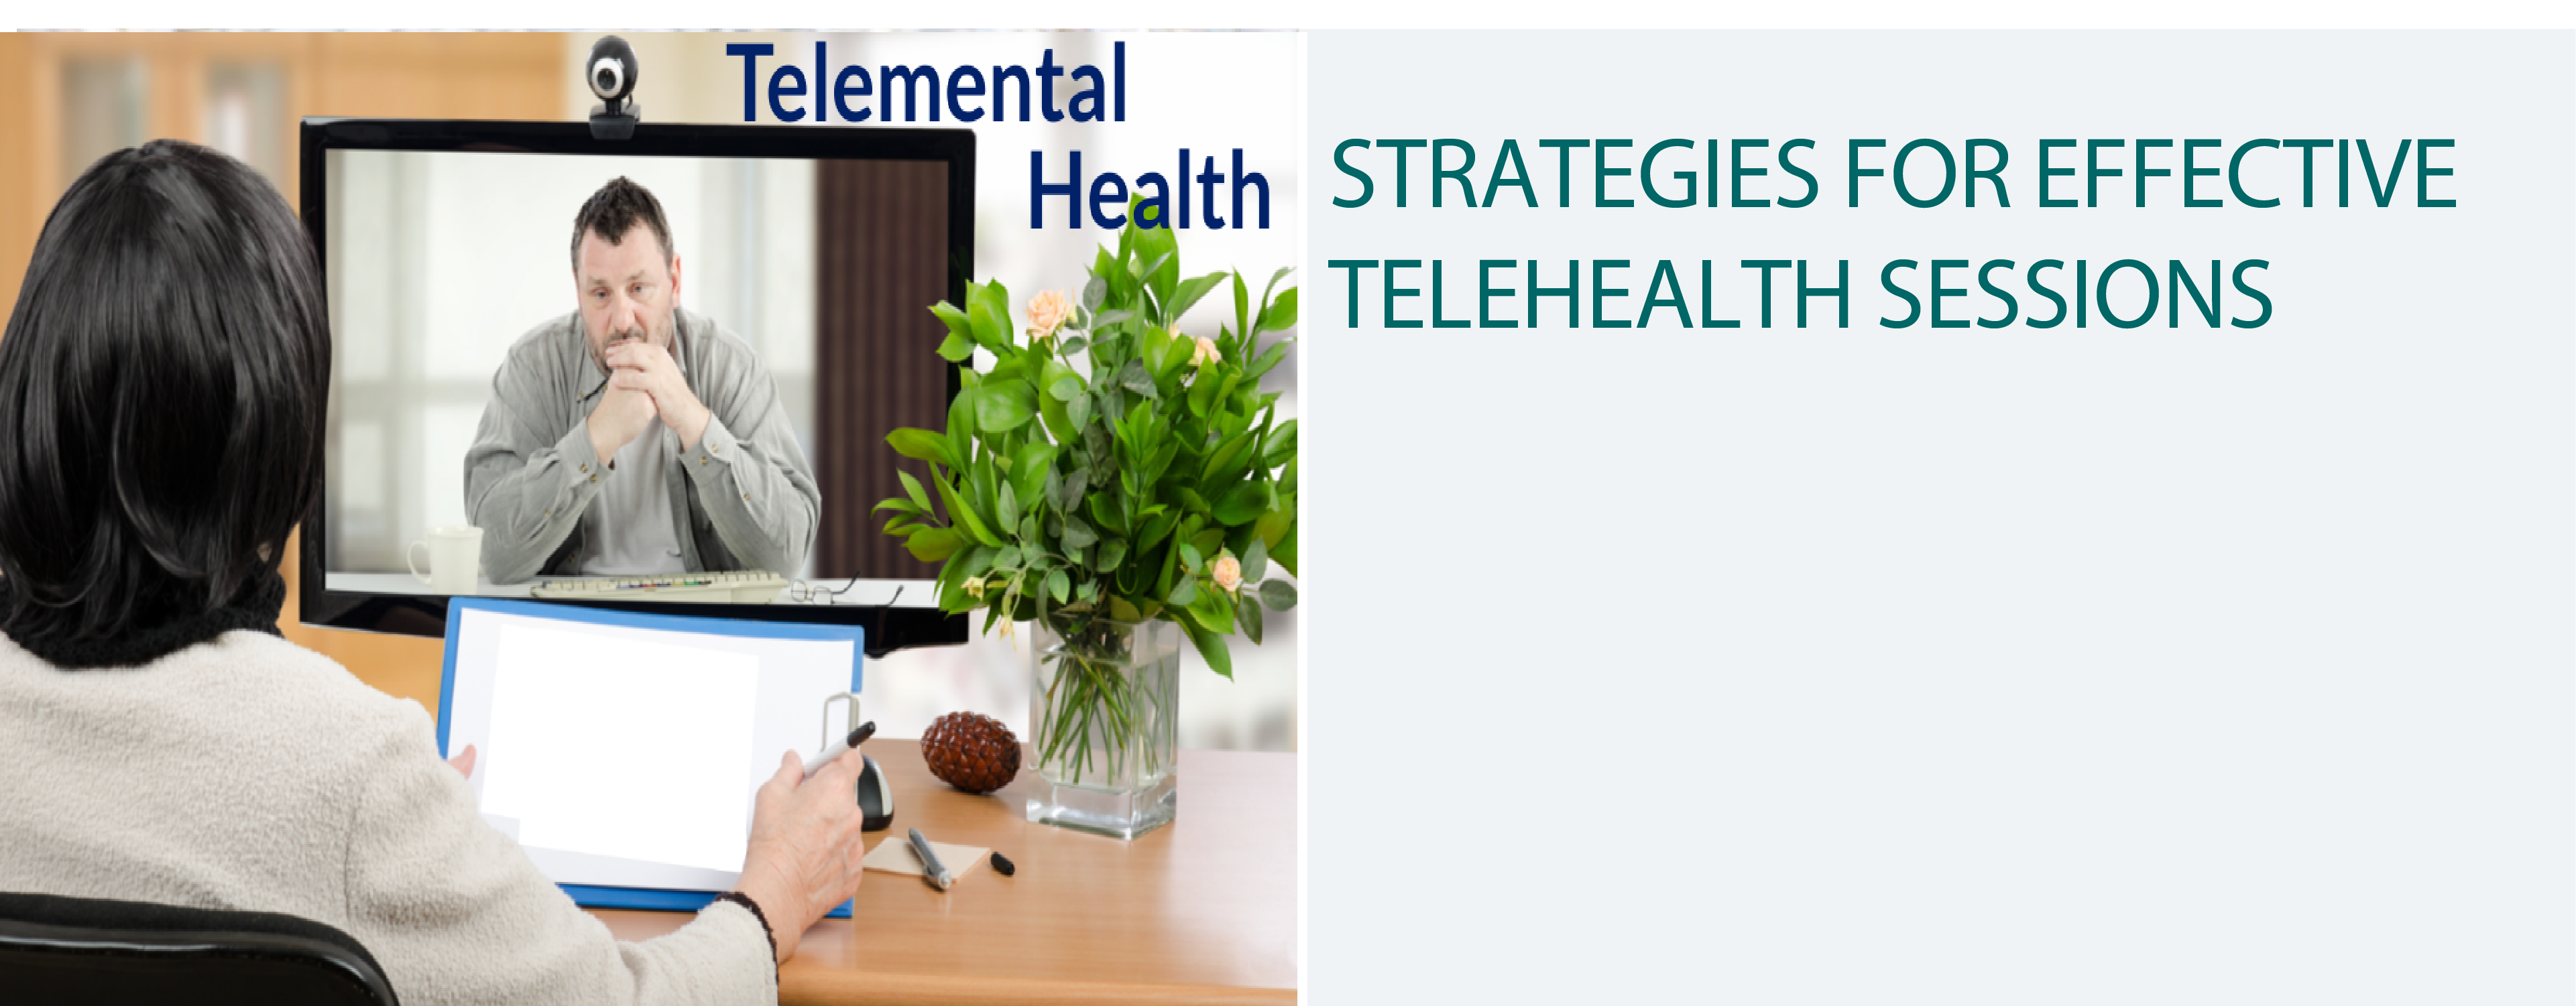 Effective Strategies for Telehealth Sessions